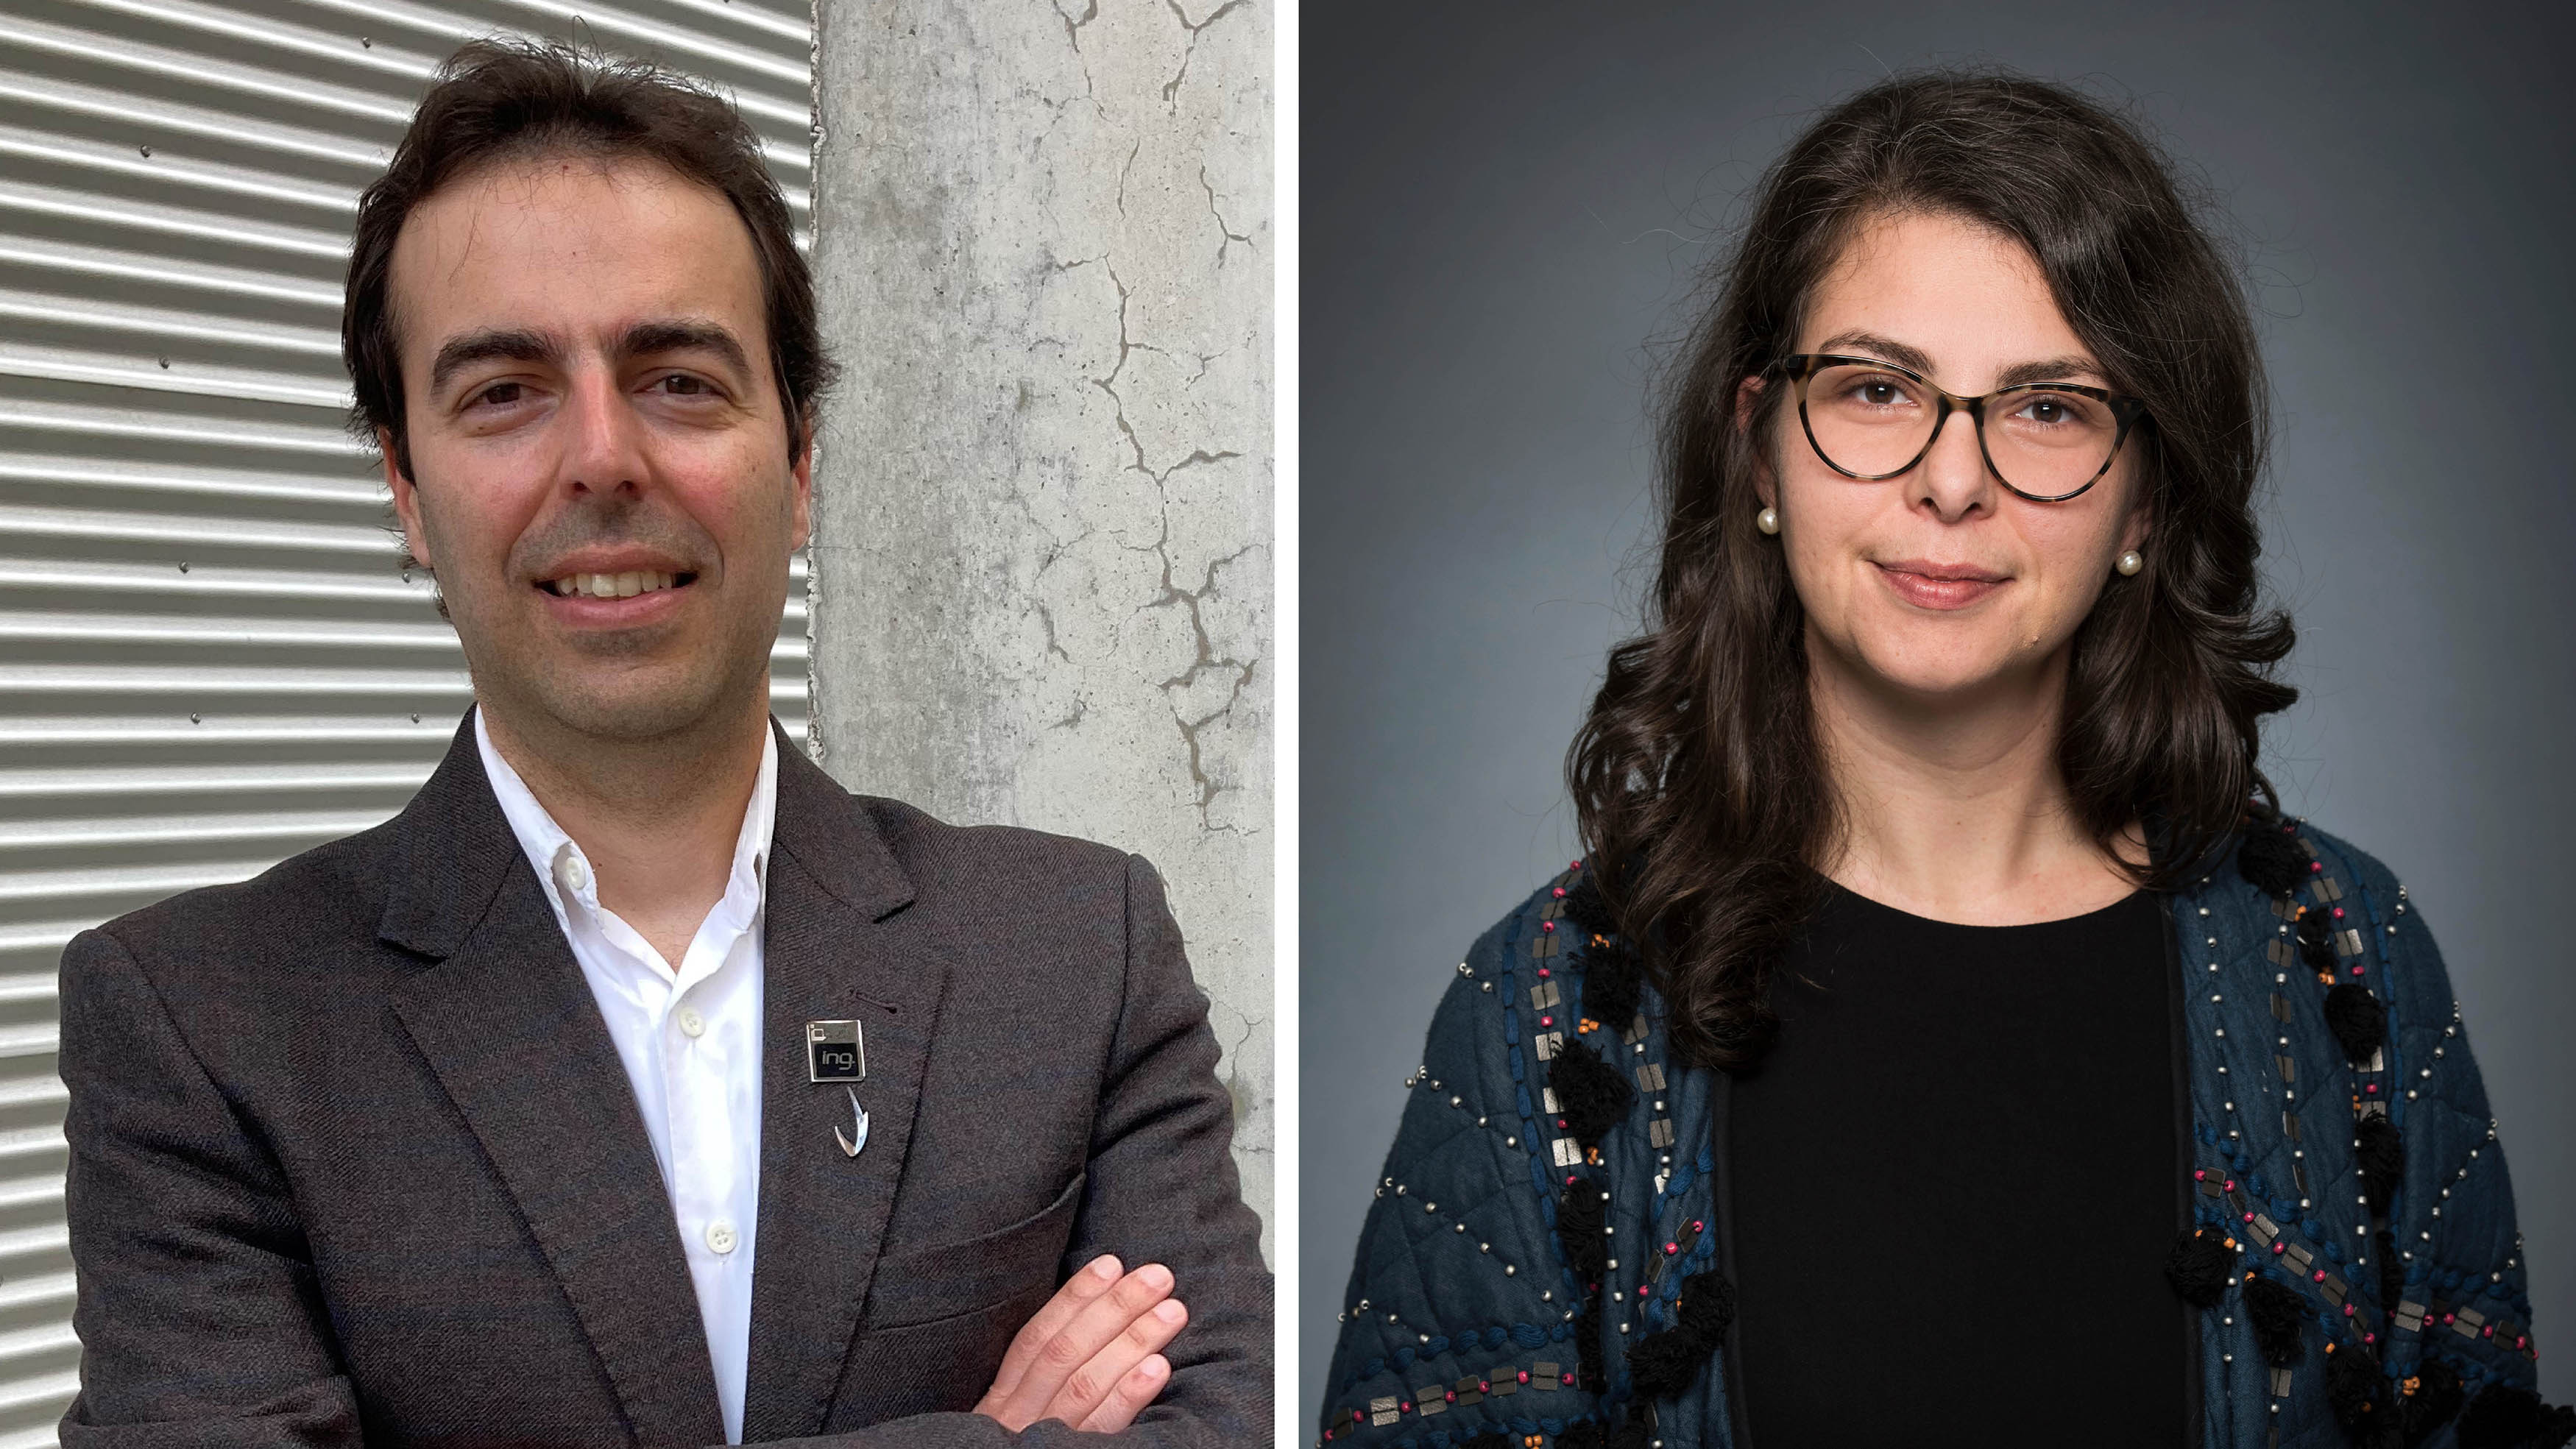 Leandro Sanchez and Alice Zwerling